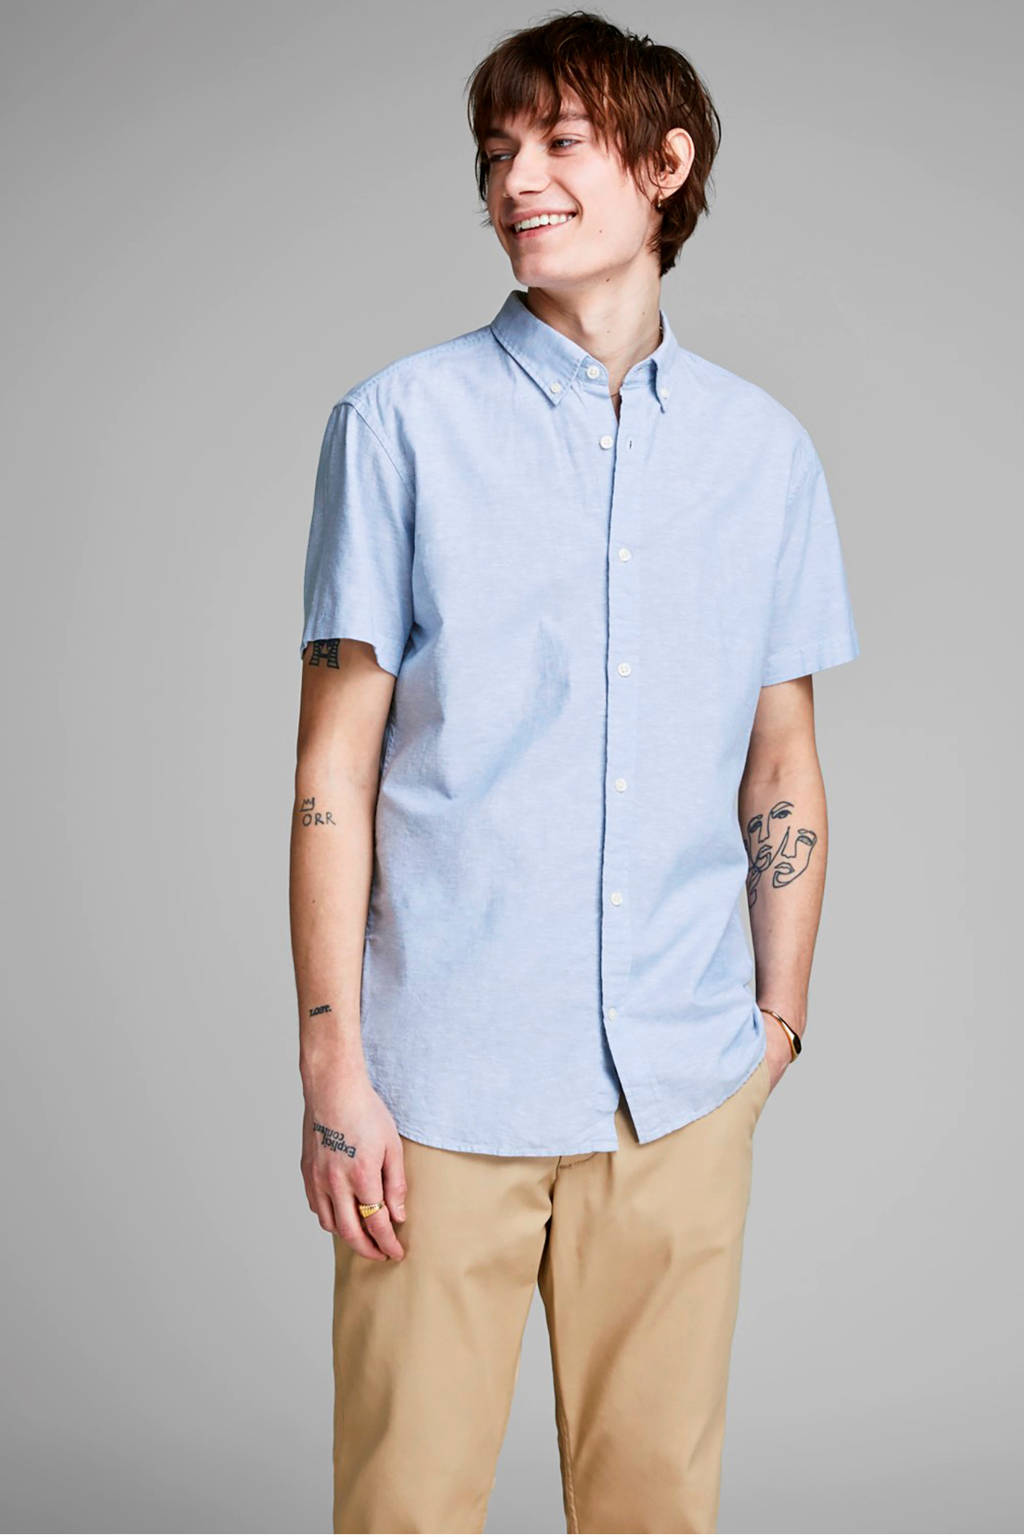 JACK & JONES ESSENTIALS gemêleerd regular fit overhemd lichtblauw, Lichtblauw